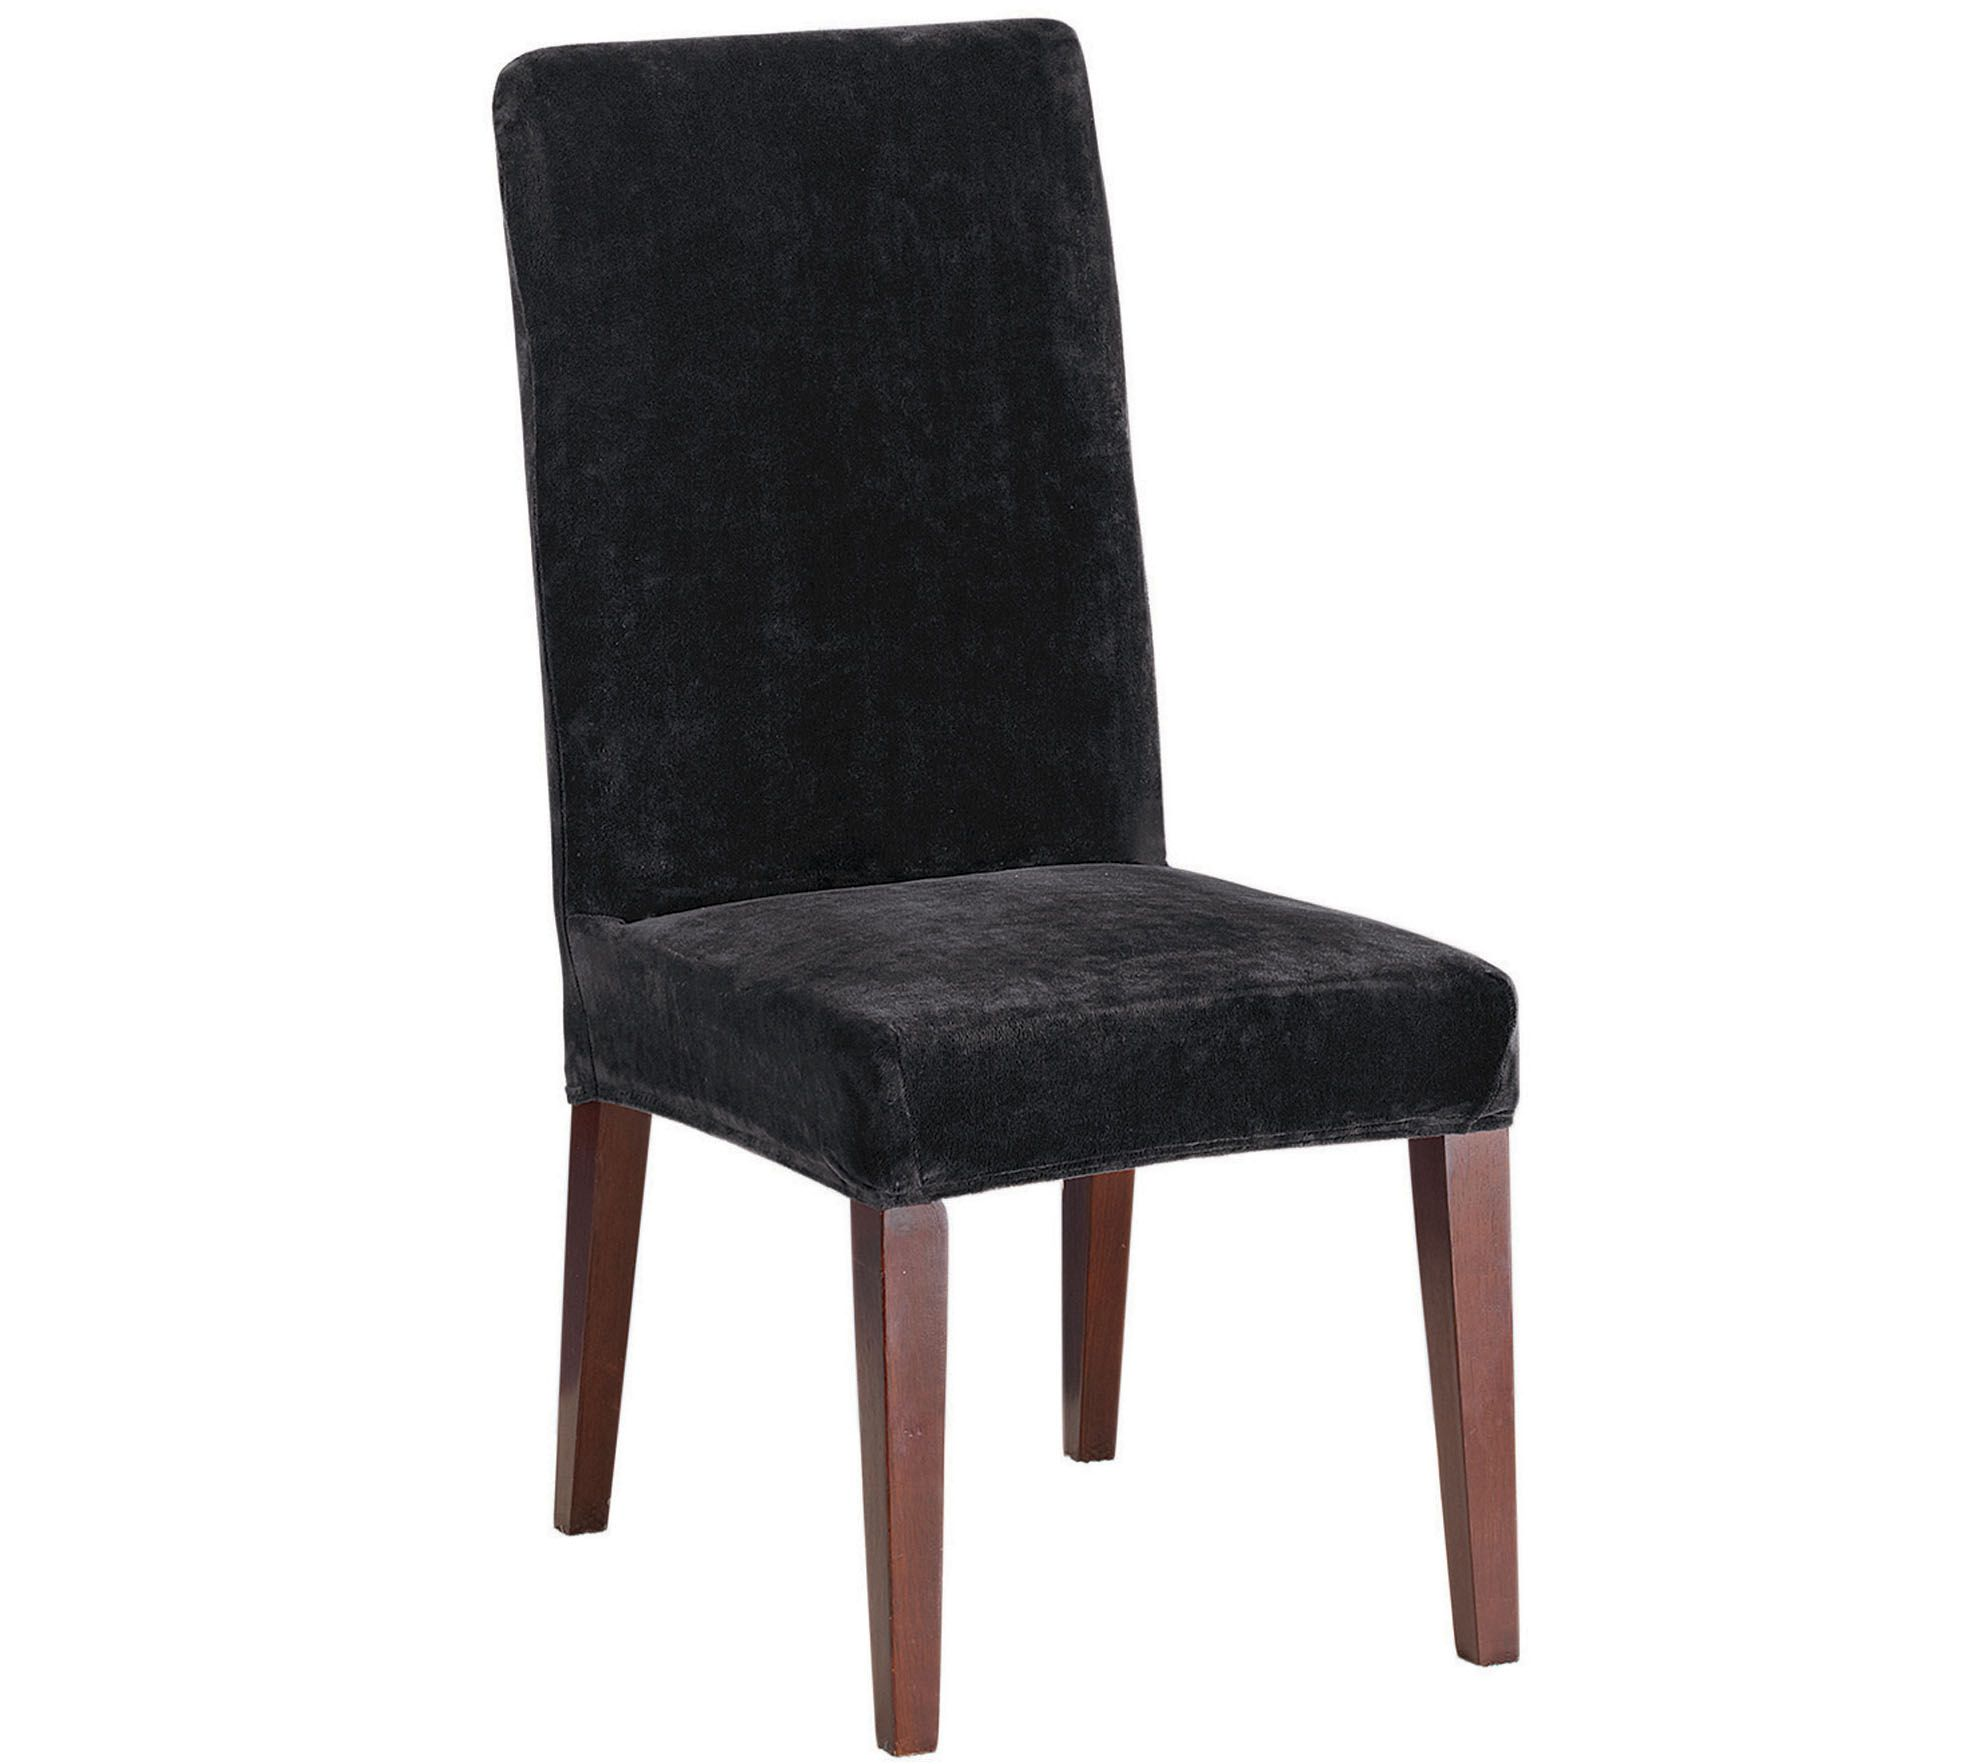 dining chair covers bed bath and beyond melissa doug wooden table chairs sure fit stretch plush short slipcover  qvc